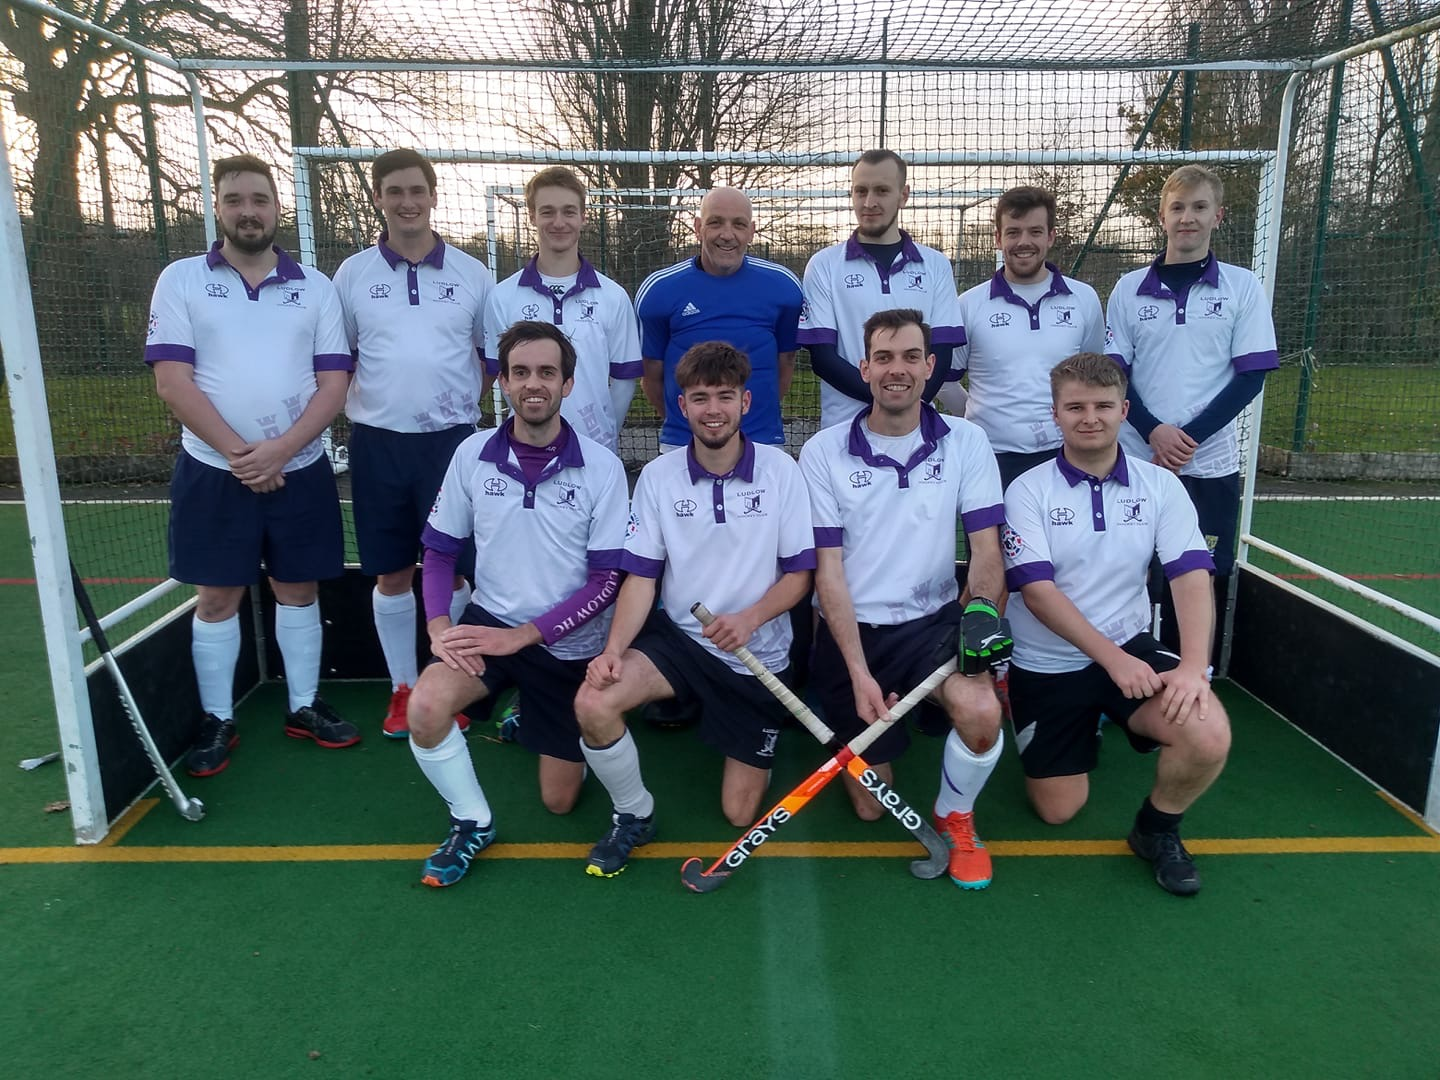 Back row. Left to right. Mike Wilson, Patrick McBride, Tyler Davies, Dave Hughes, Matt Blount, Matt Smart, Tom Blount  Front row. Left to right. Andy Richards, Sam Pratt, Stuart Richards, Jack Pritchard